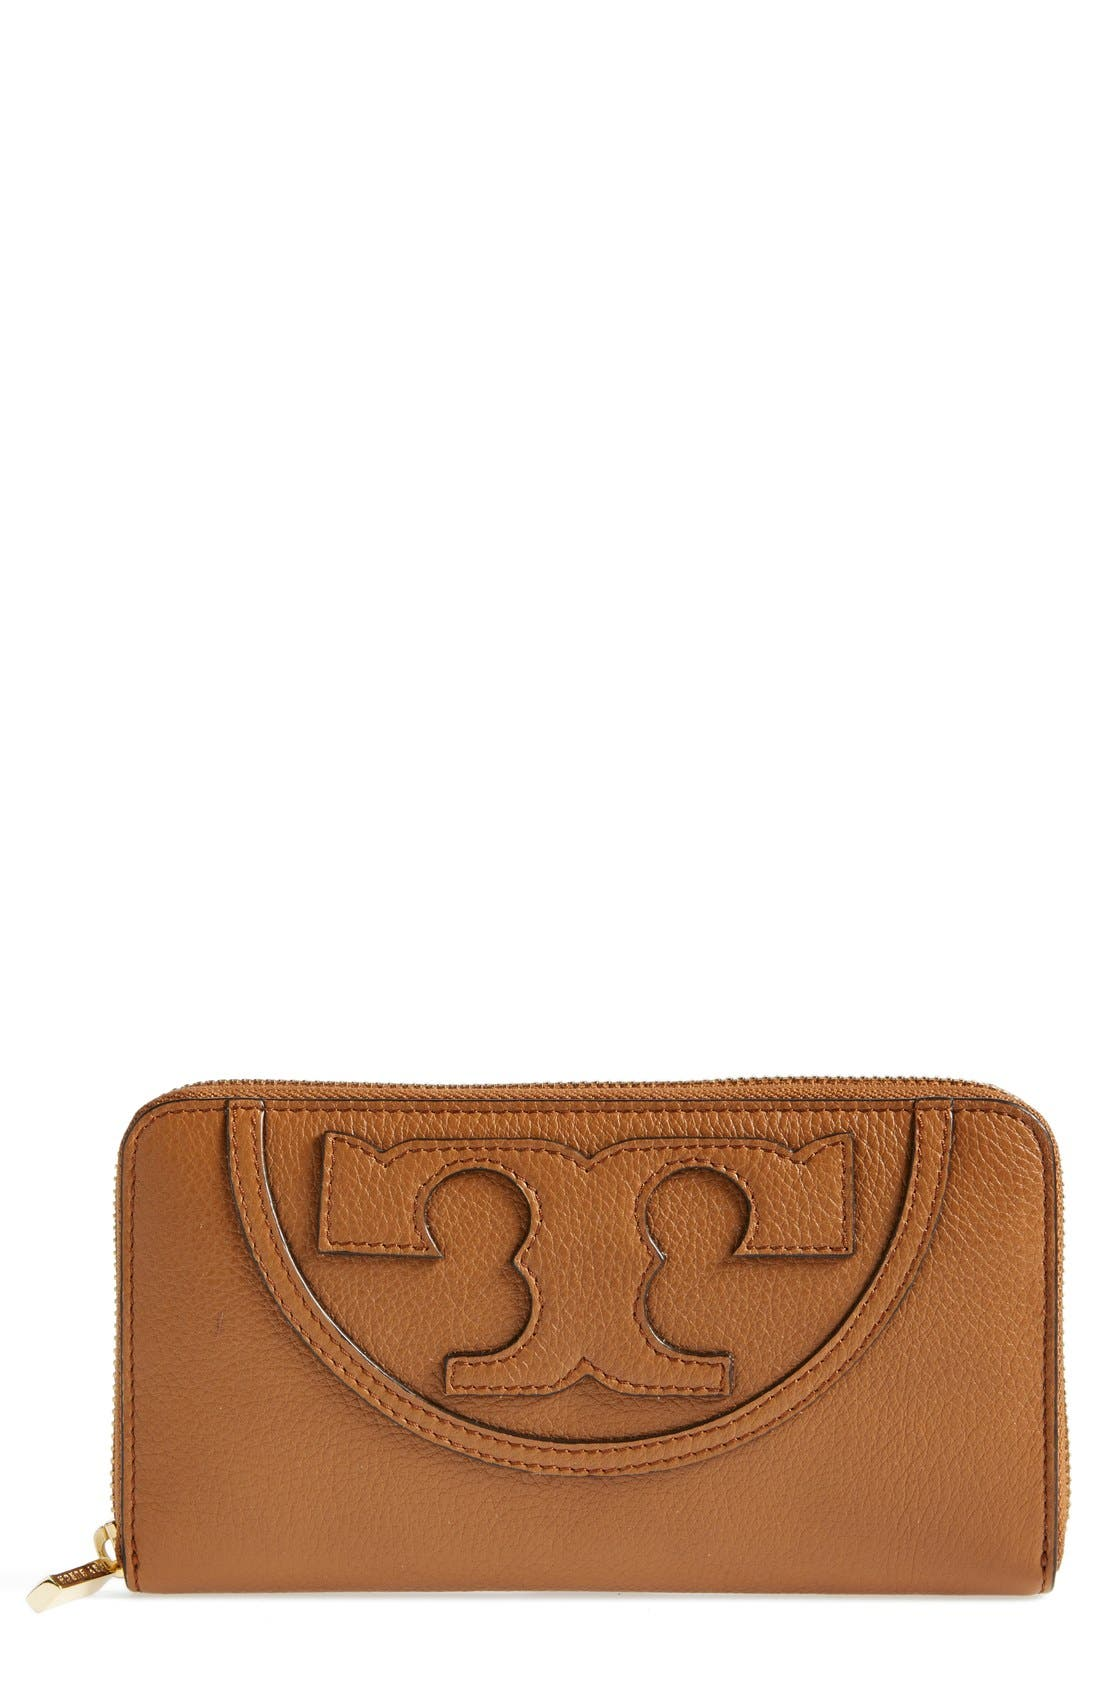 Alternate Image 1 Selected - Tory Burch 'All T' Leather Continental Wallet